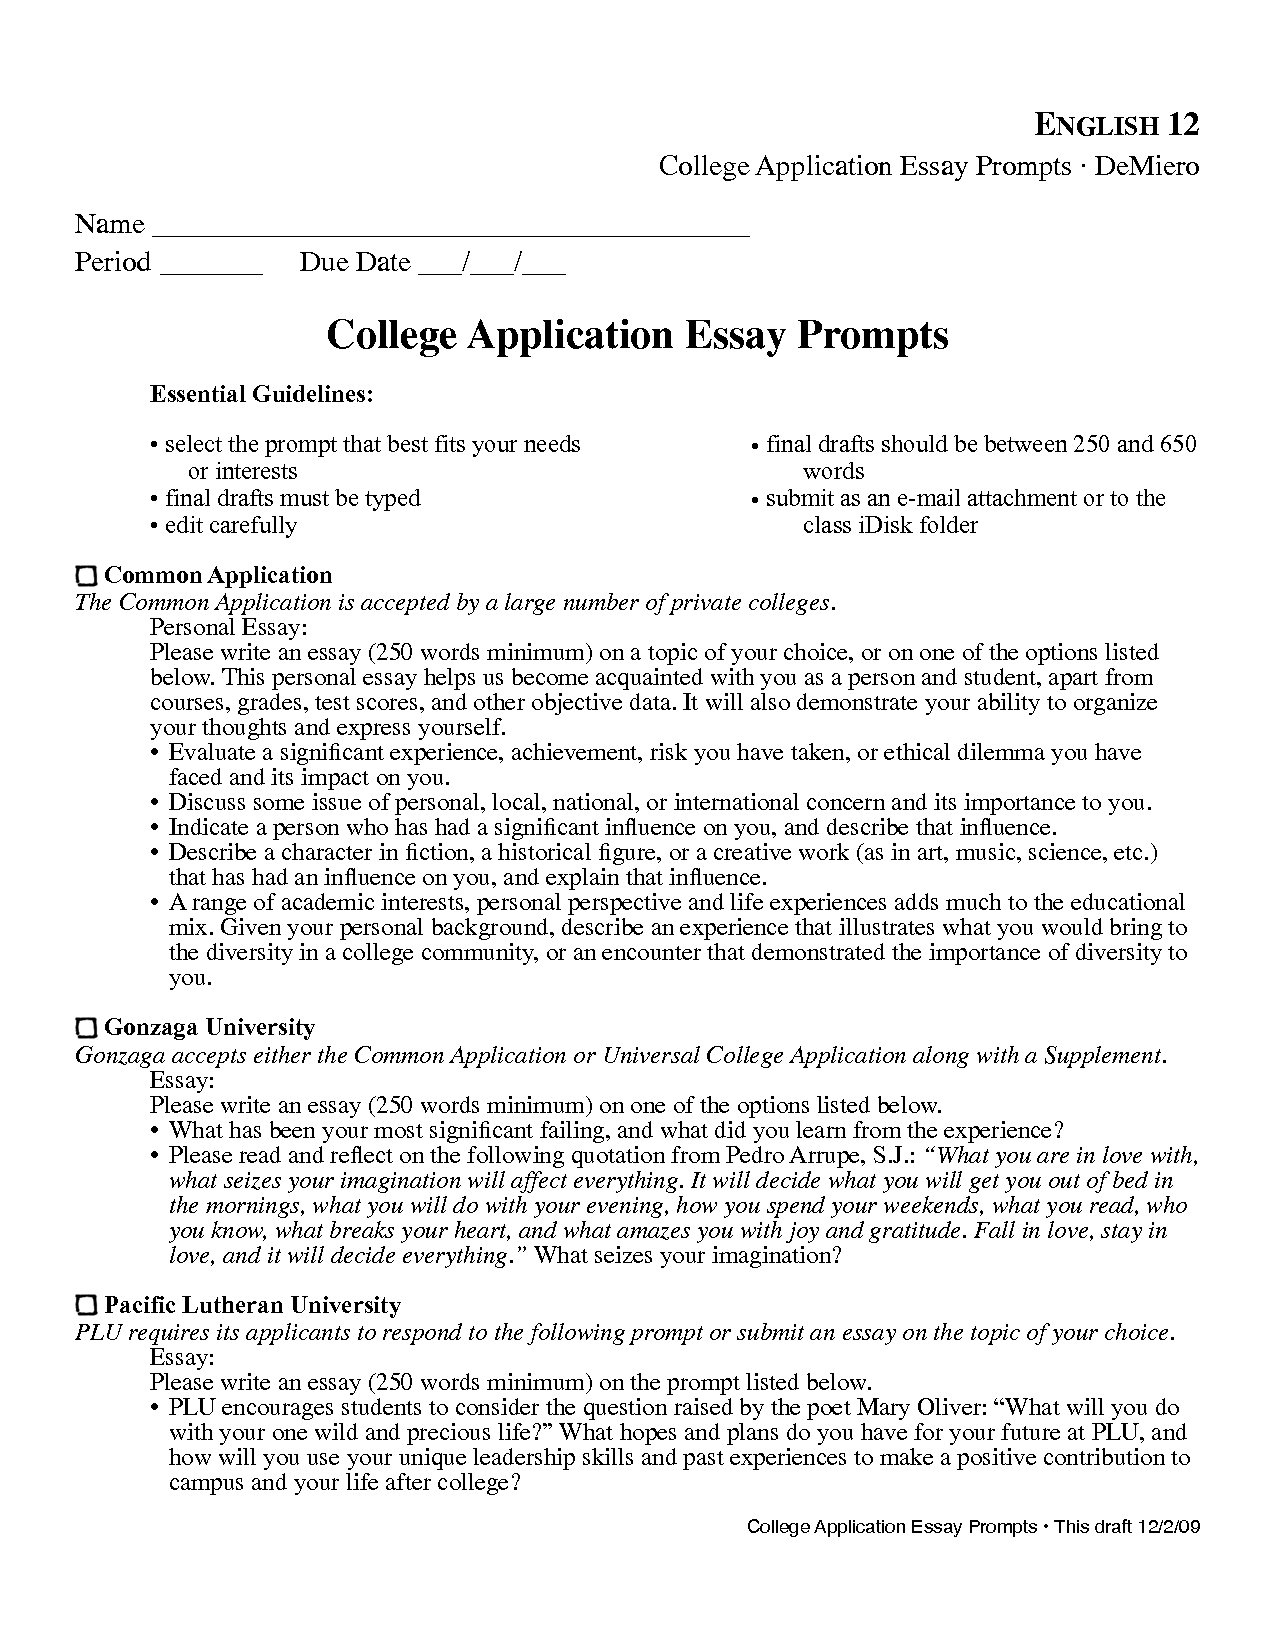 Prompt 1 college essay examples